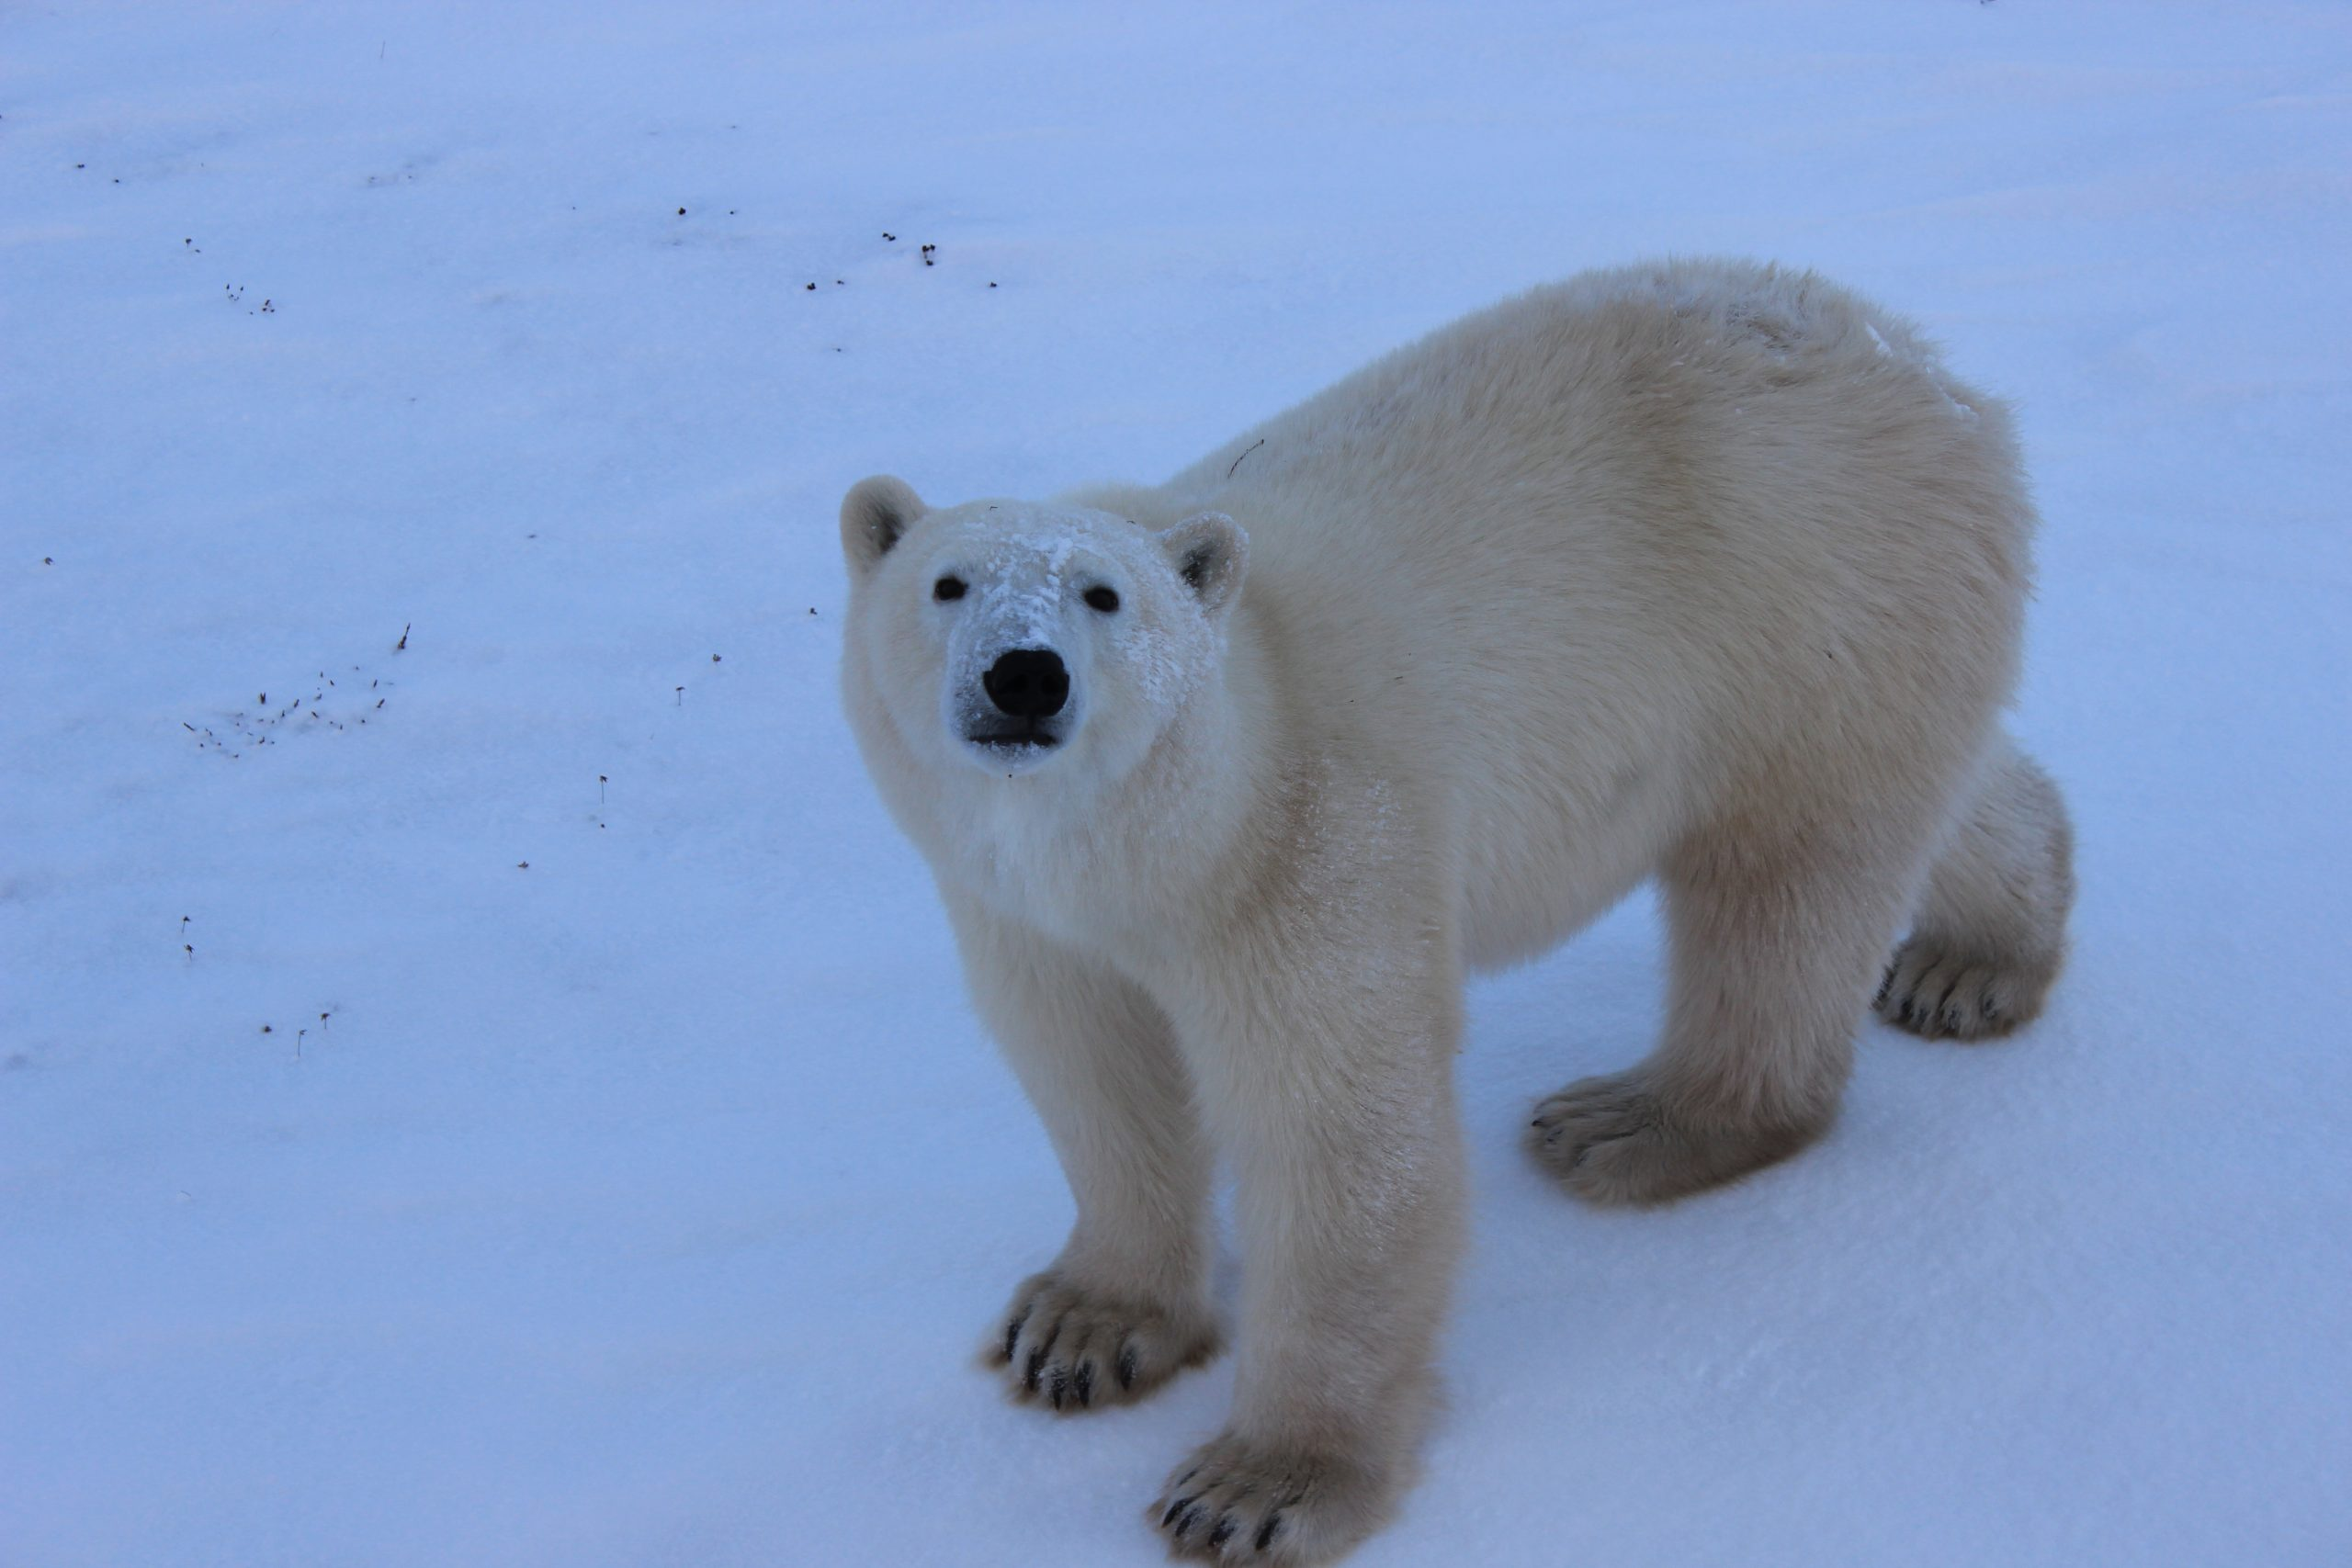 This polar bear was just a few feet from us, looking up at us as we looked back at him.